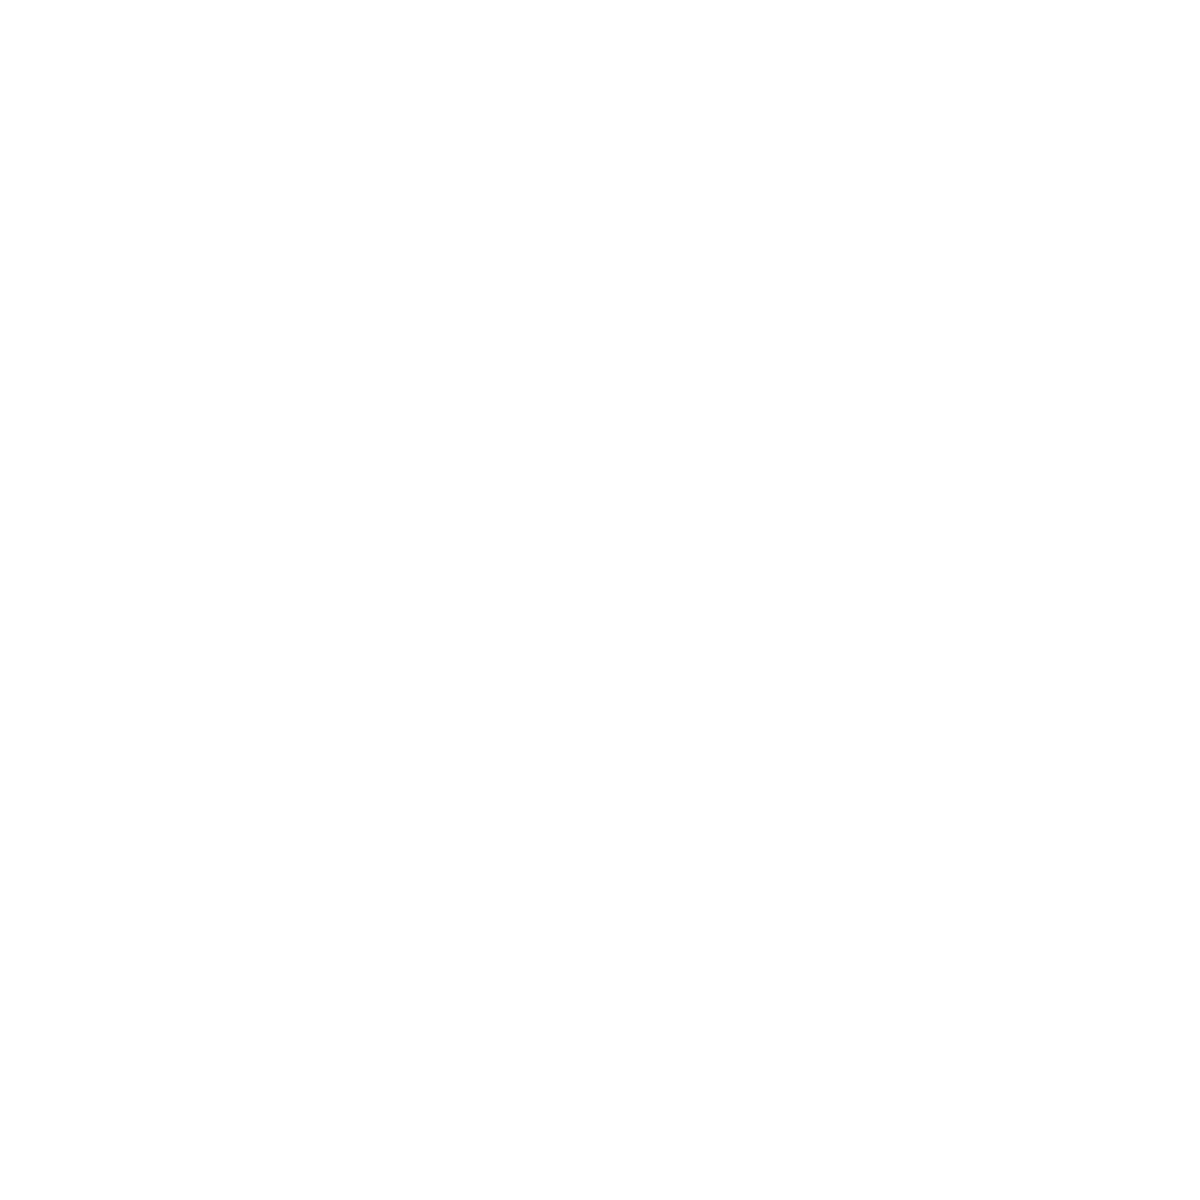 2021 Local Excellence Winner in Providence, RI